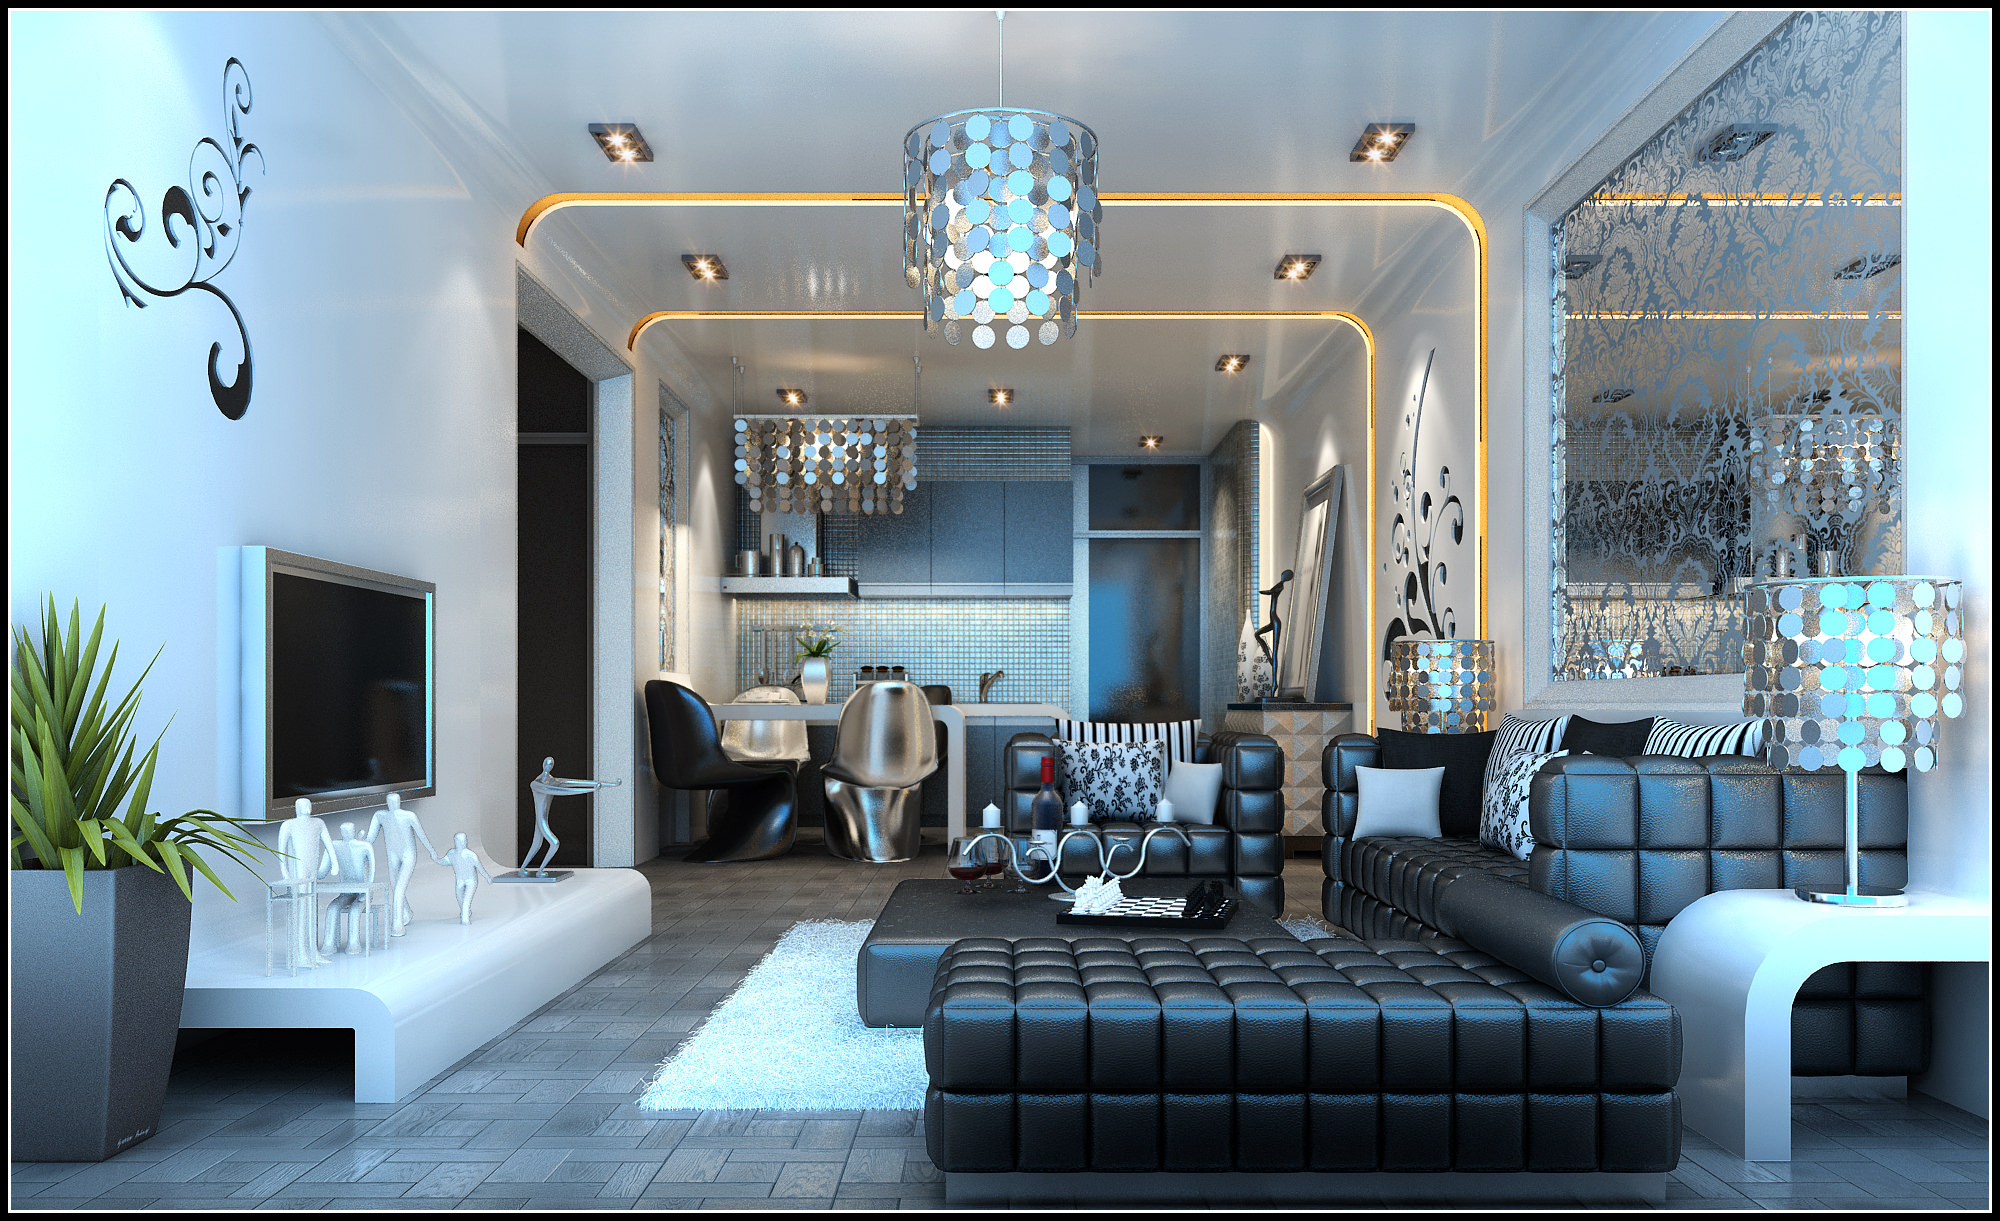 Modern Living Room Fully Furnished And Decorated In Dark Colors 3d Model  Max 1 Part 36